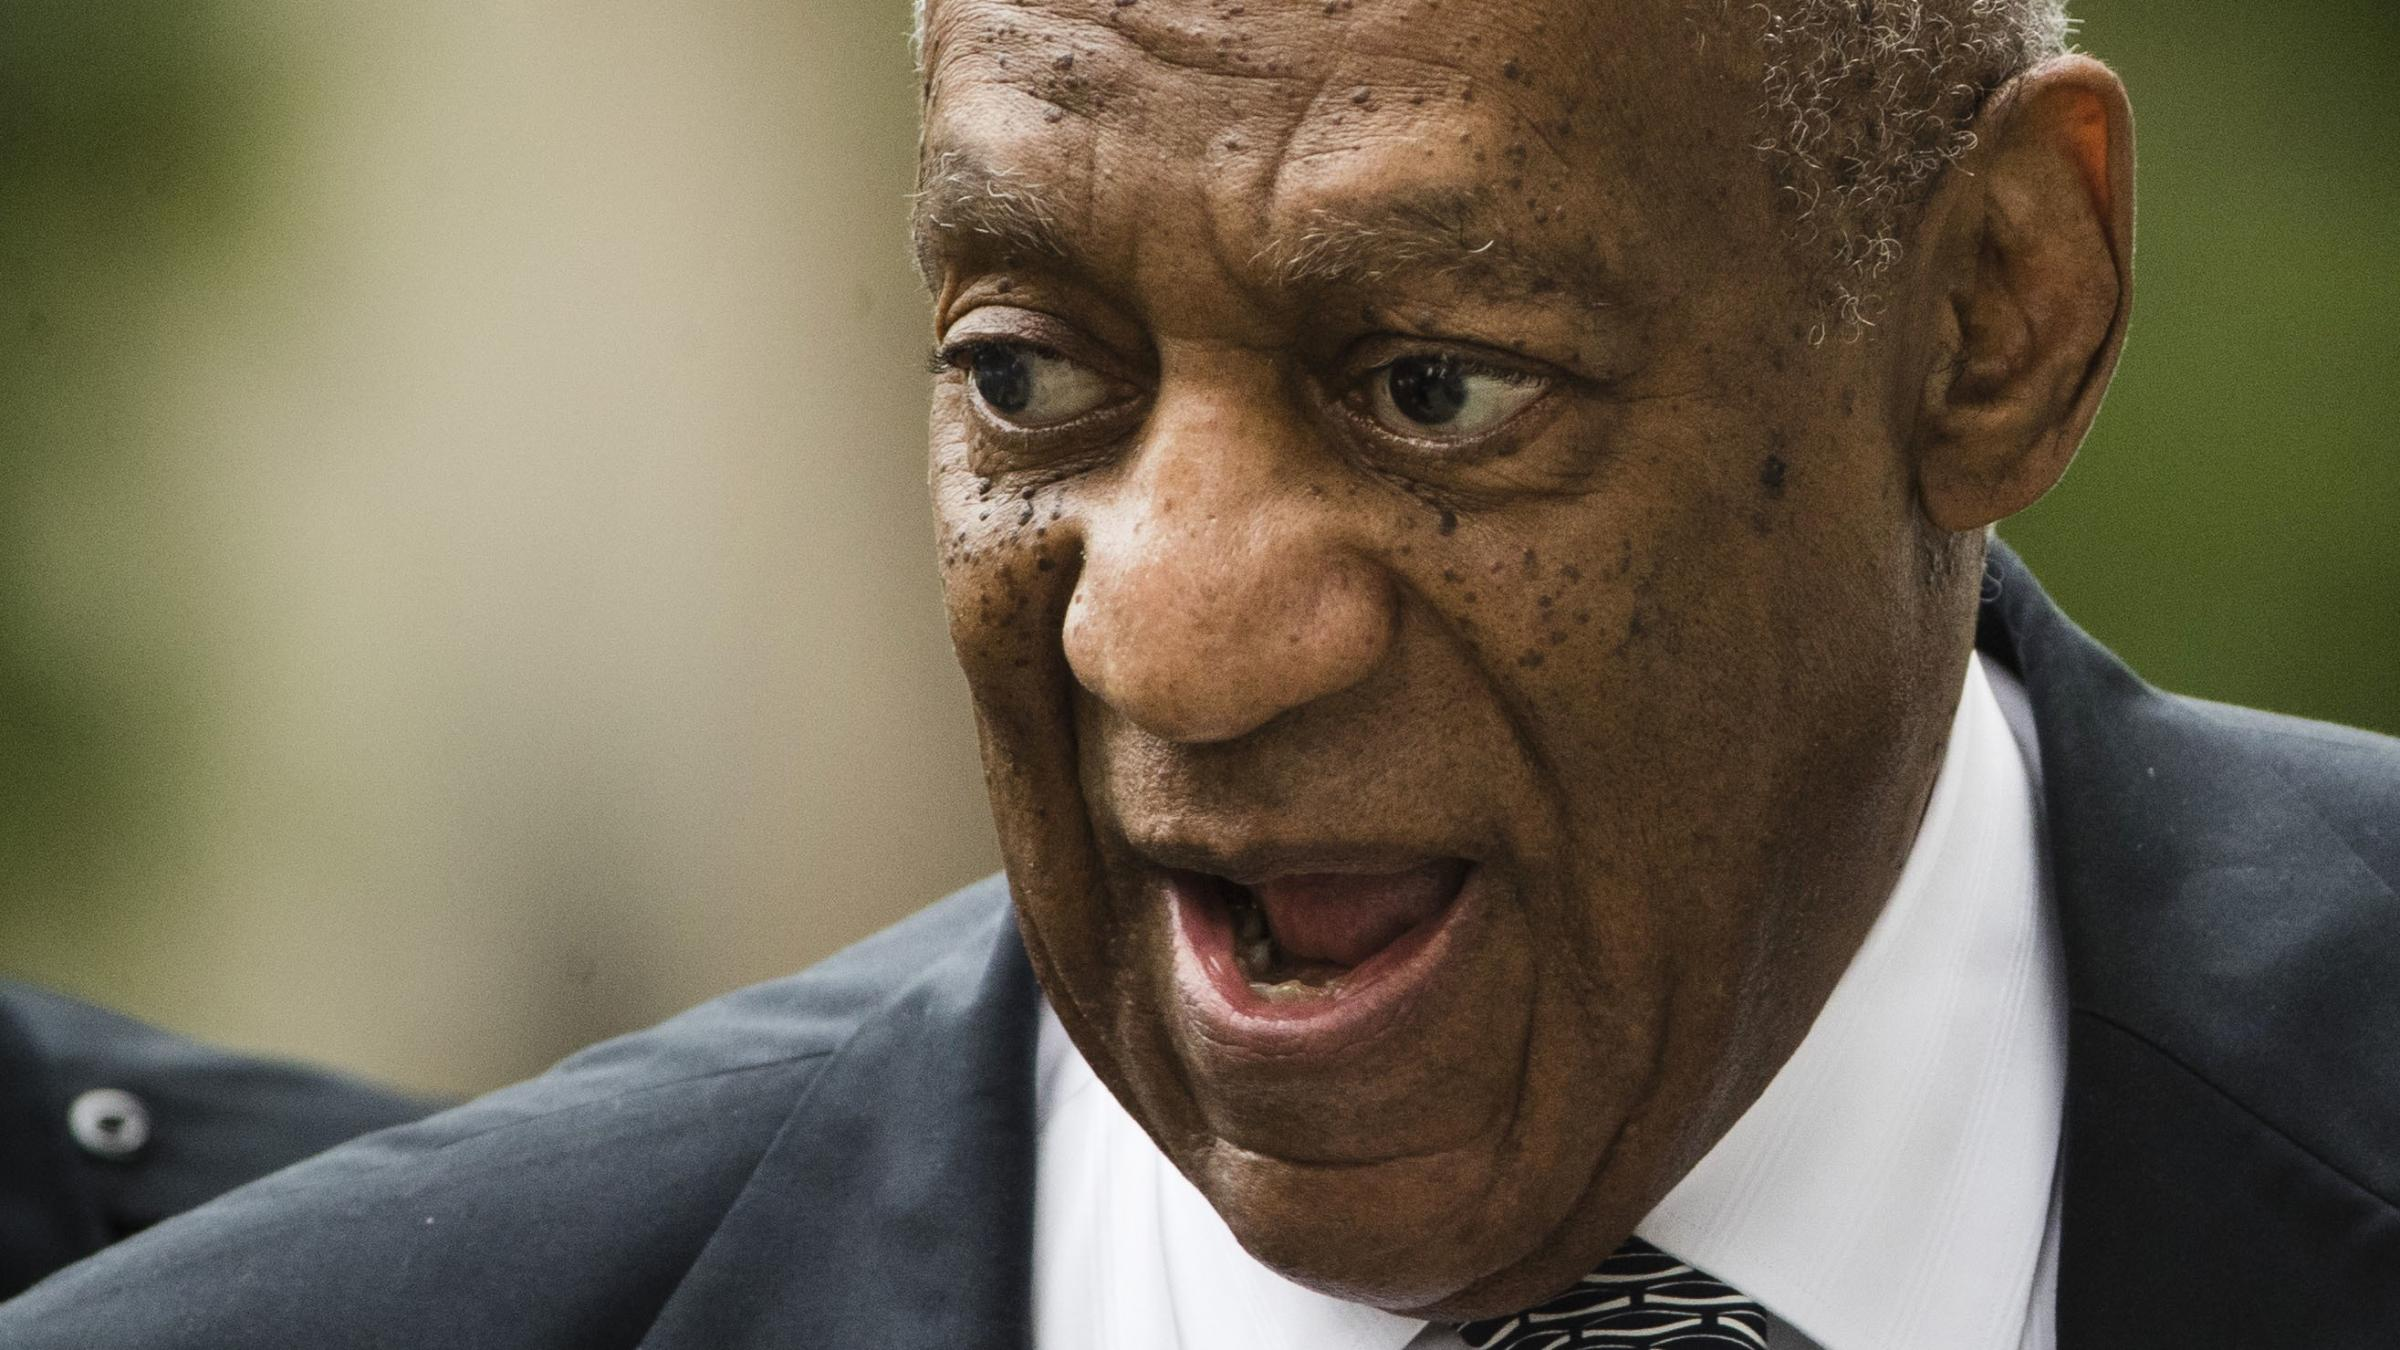 Jurors asked eighth question in Cosby trial